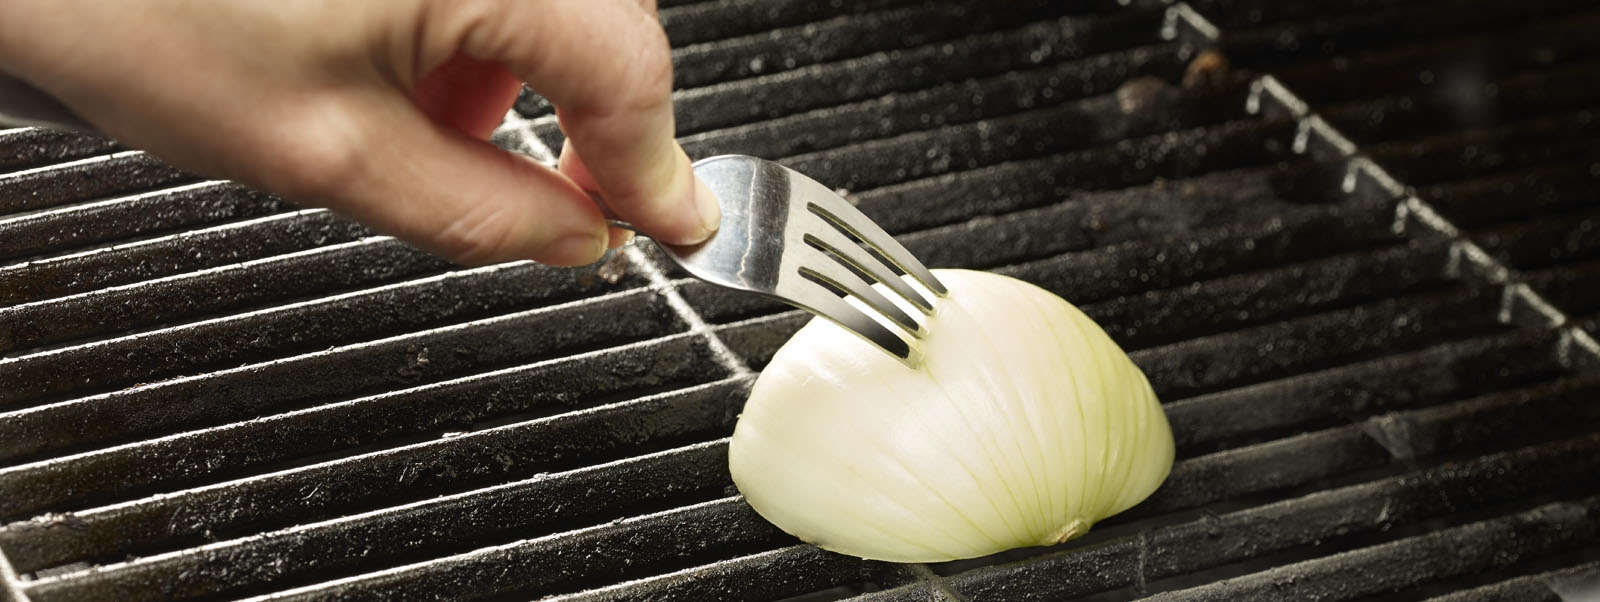 Make Your Grill Non-stick Naturally